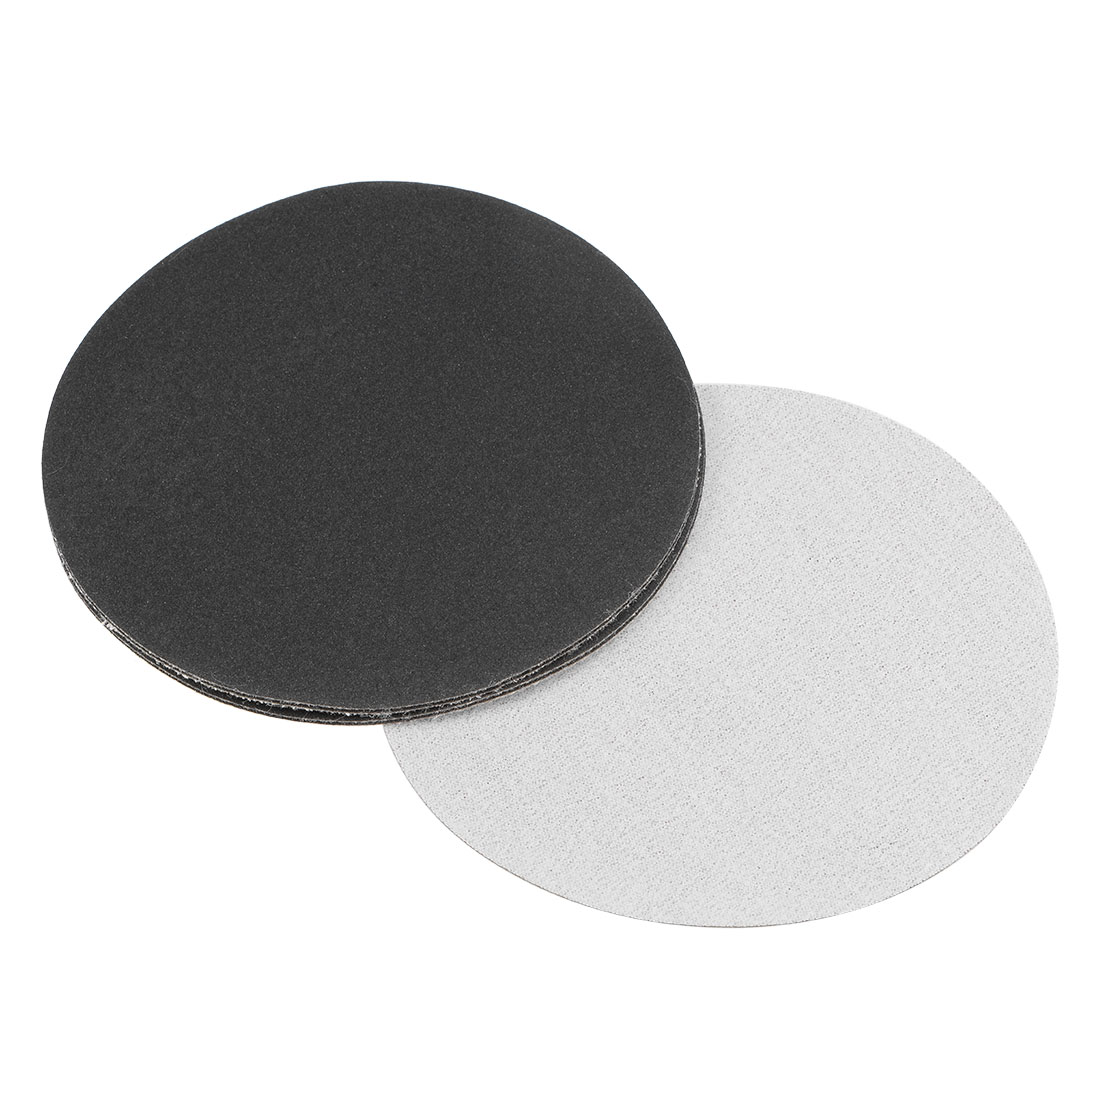 5 inch Wet Dry Discs 240 Grit Hook and Loop Sanding Disc Silicon Carbide 5pcs